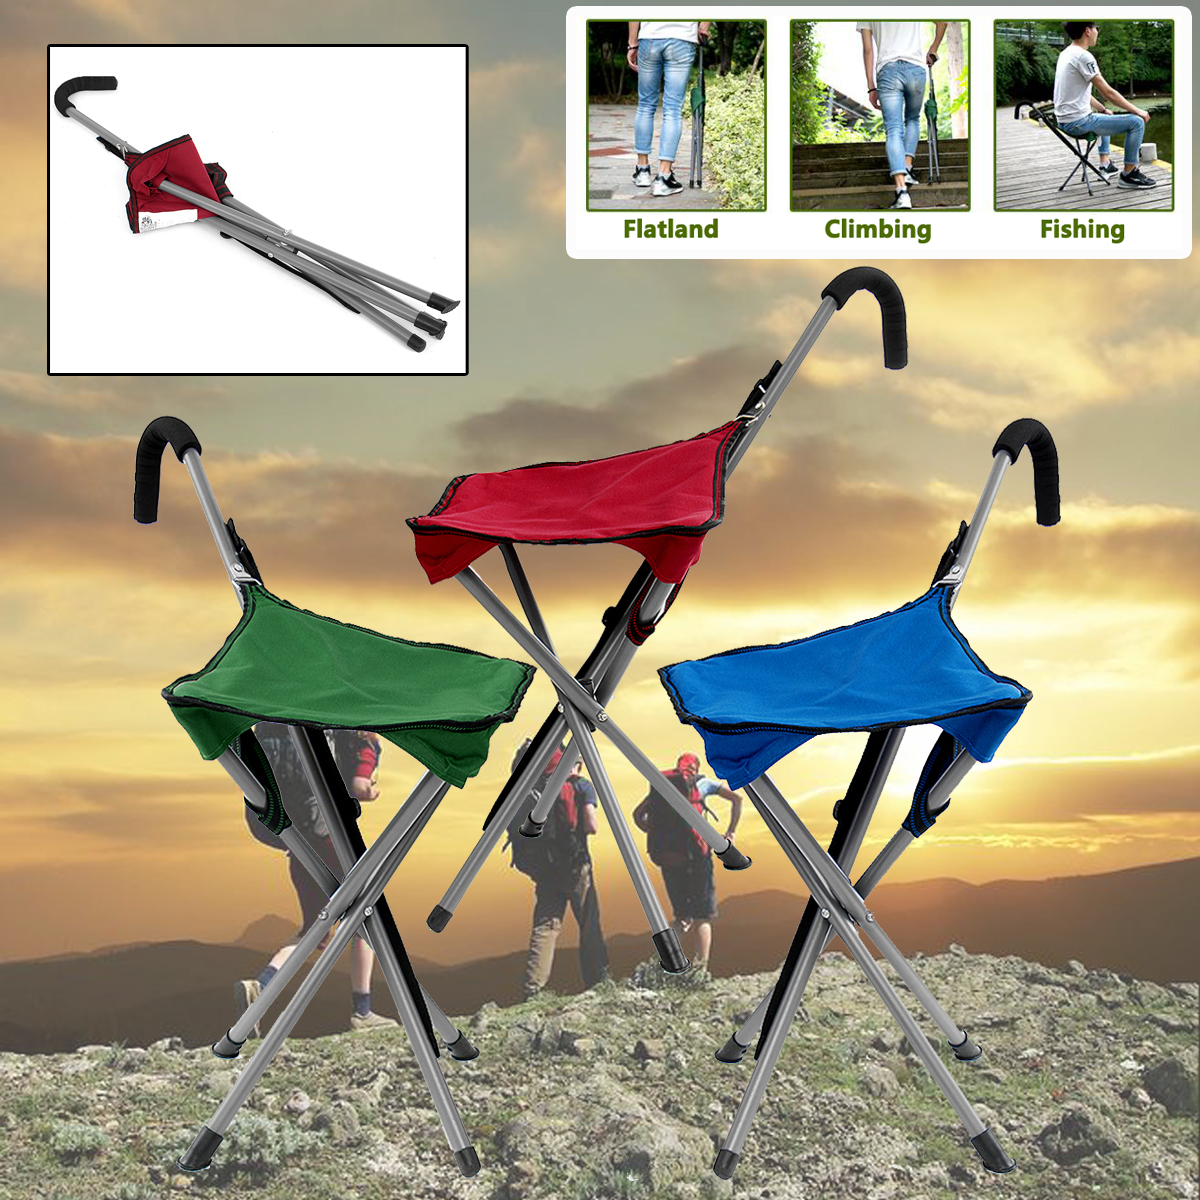 Folding Cane Portable Walking Stick Chair Camping Hiking Handle Seat Rest Tripod Outdoor Stool Chair Outerdoor Tool folding cane chair walking stick with tripod stool